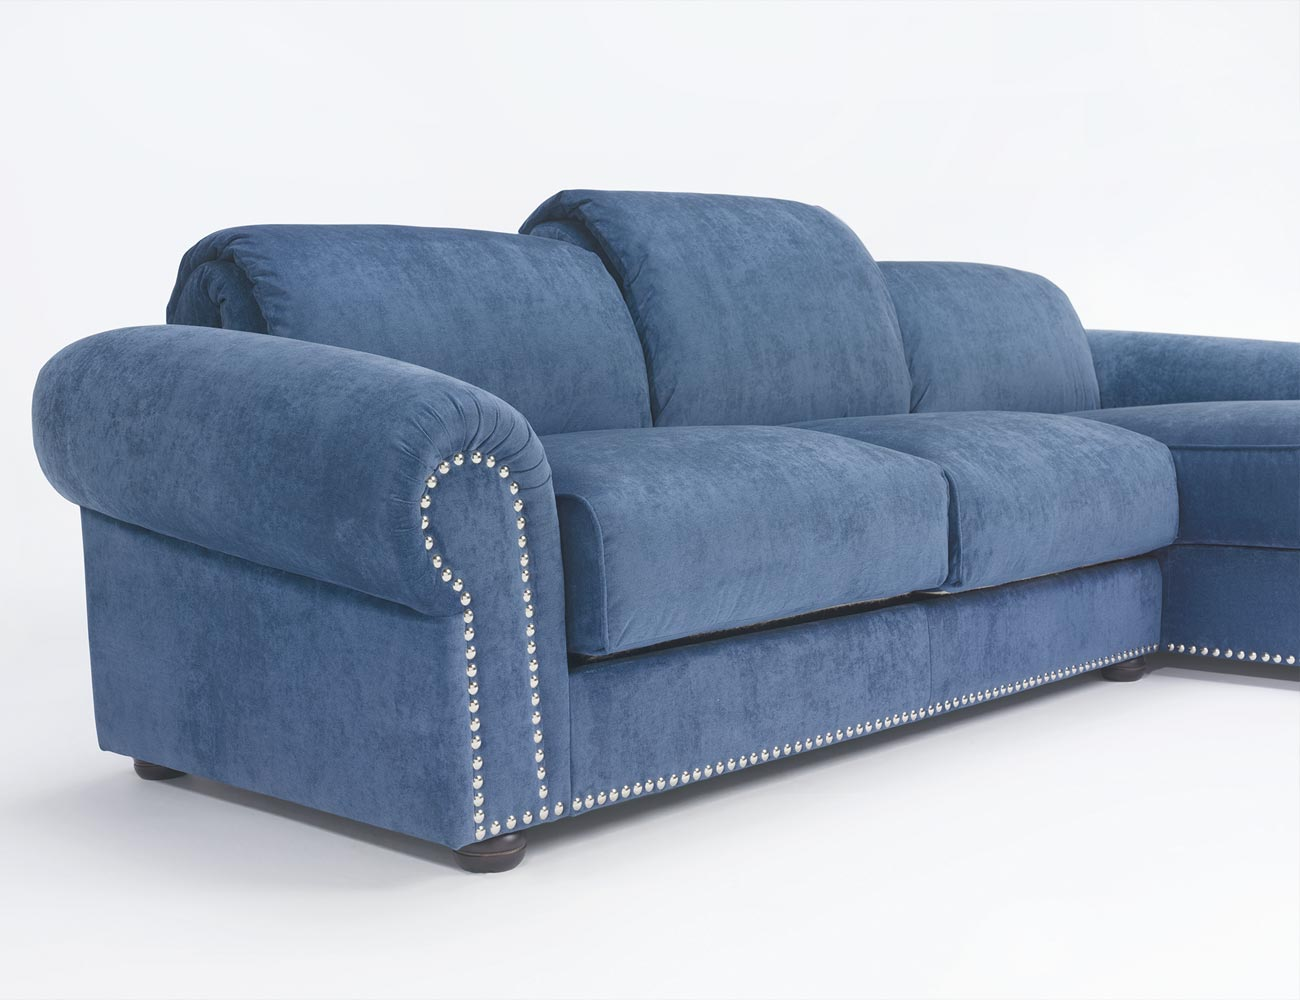 Sofa chaiselongue gran lujo decorativo azul 111